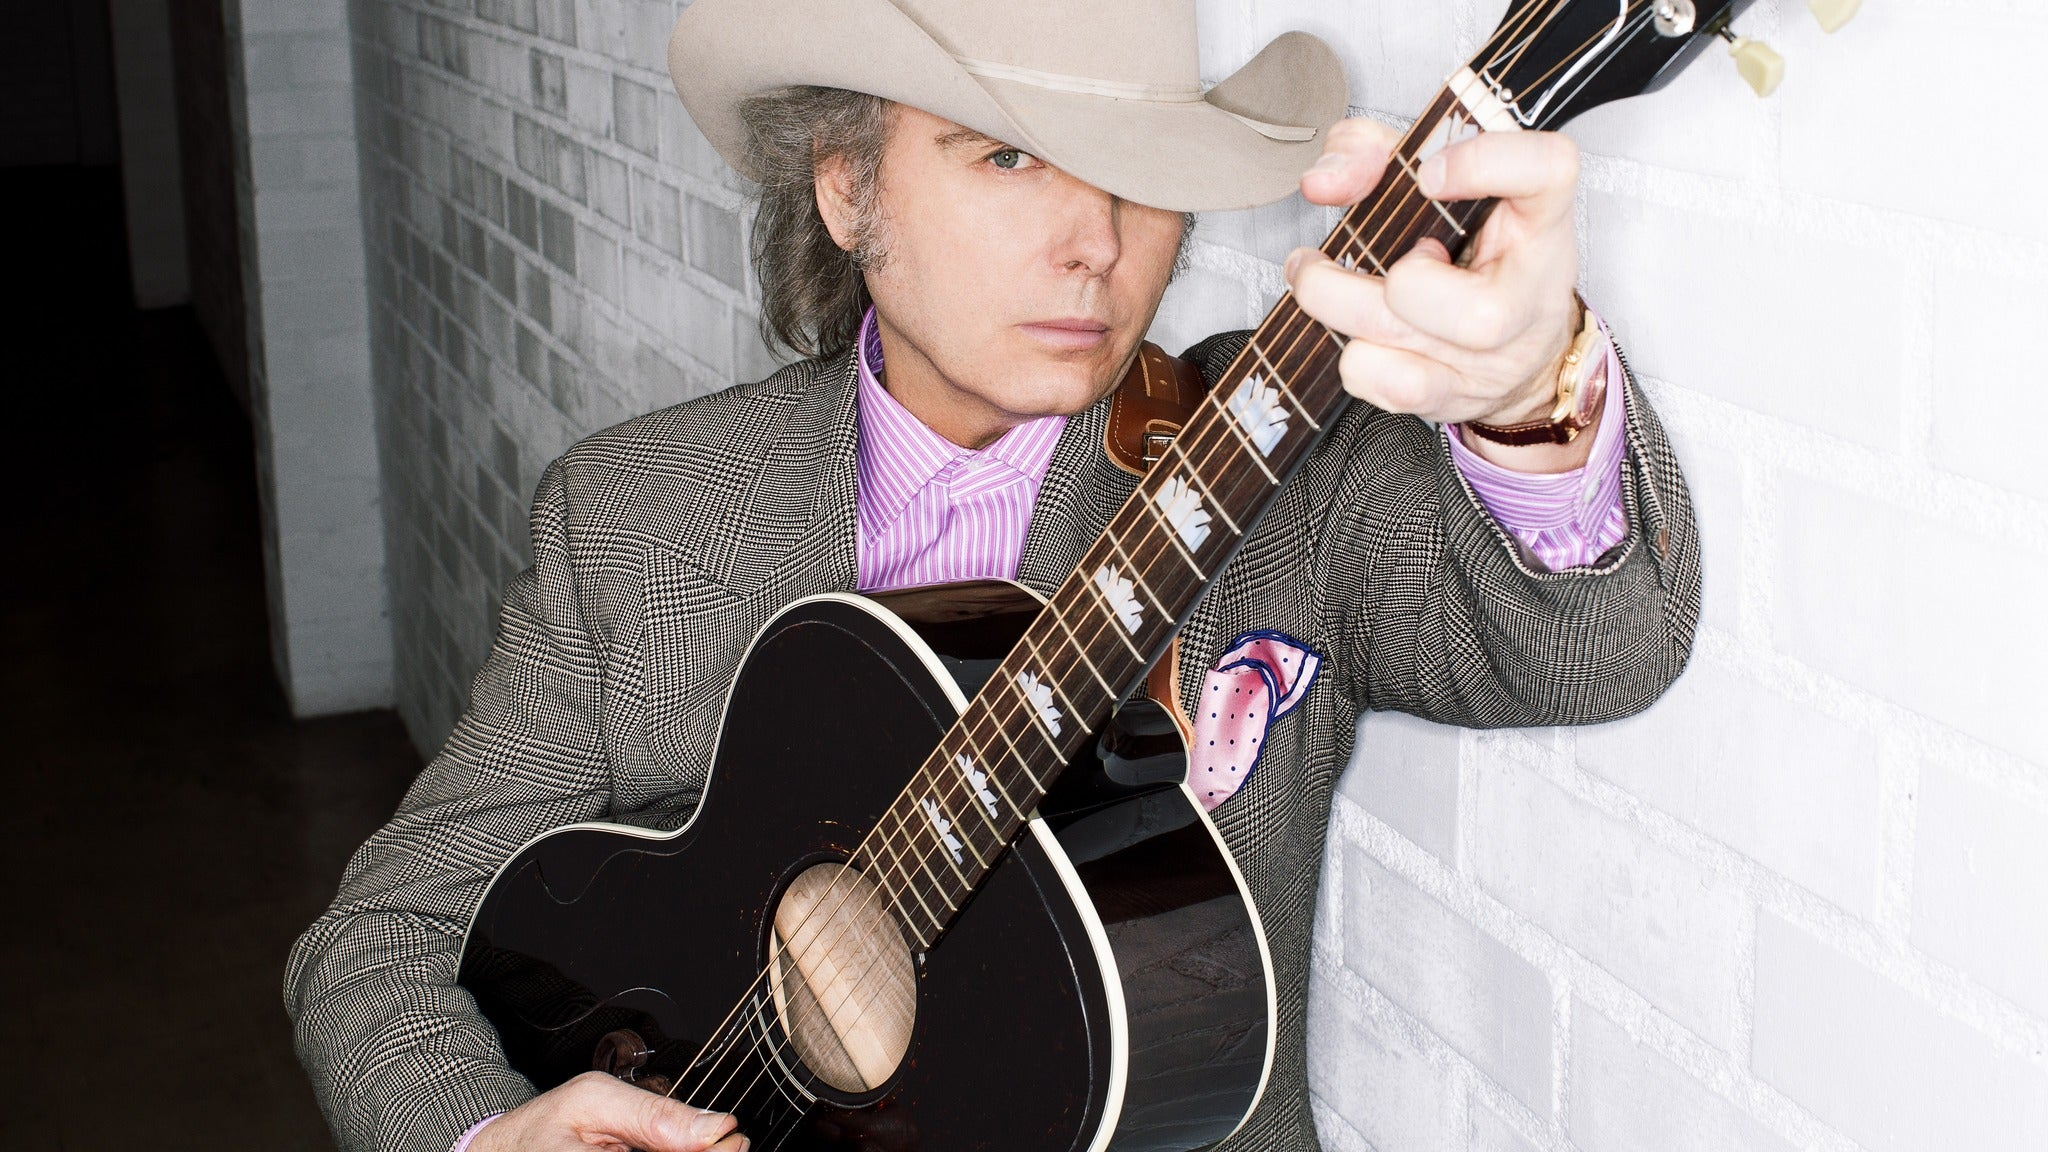 Dwight Yoakam at Snoqualmie Casino - WA